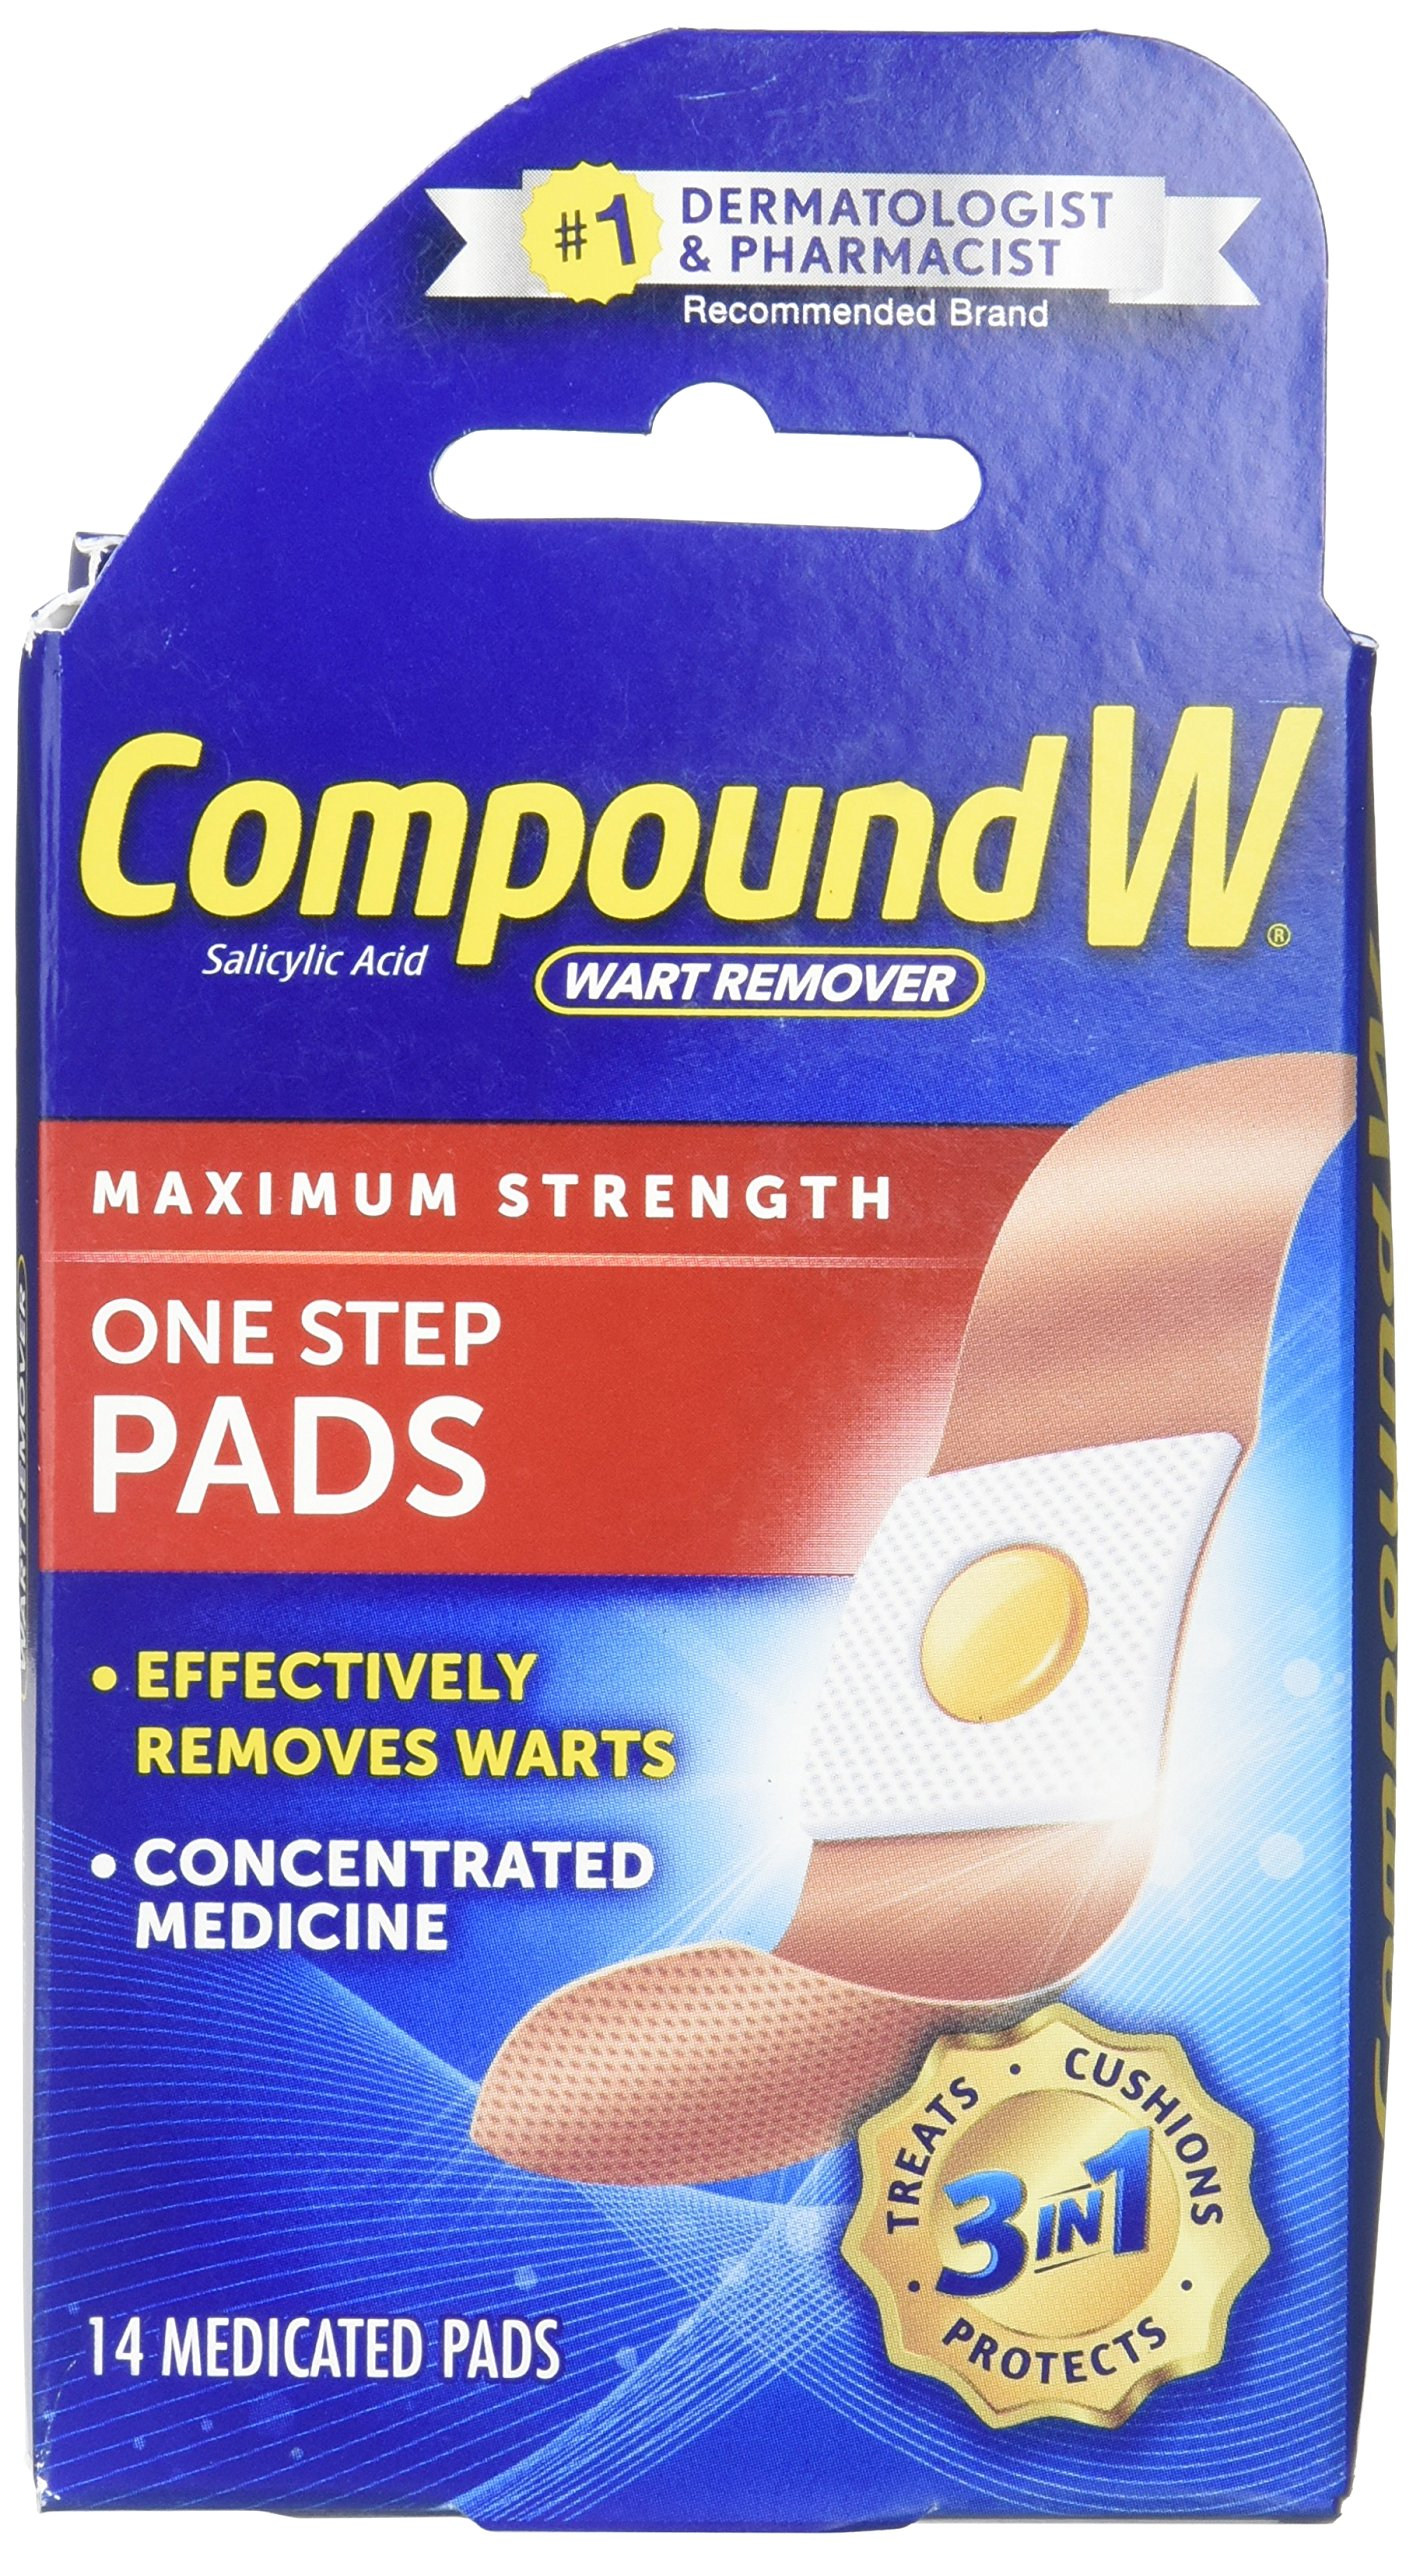 Compound W Wart Remover One Step Pads - Maximum Strength - Waterproof, Medicated, Self-Adhesive Pads Conceal and Protect Common and Plantar Warts While Treating them with Salicylic Acid - 14 Count